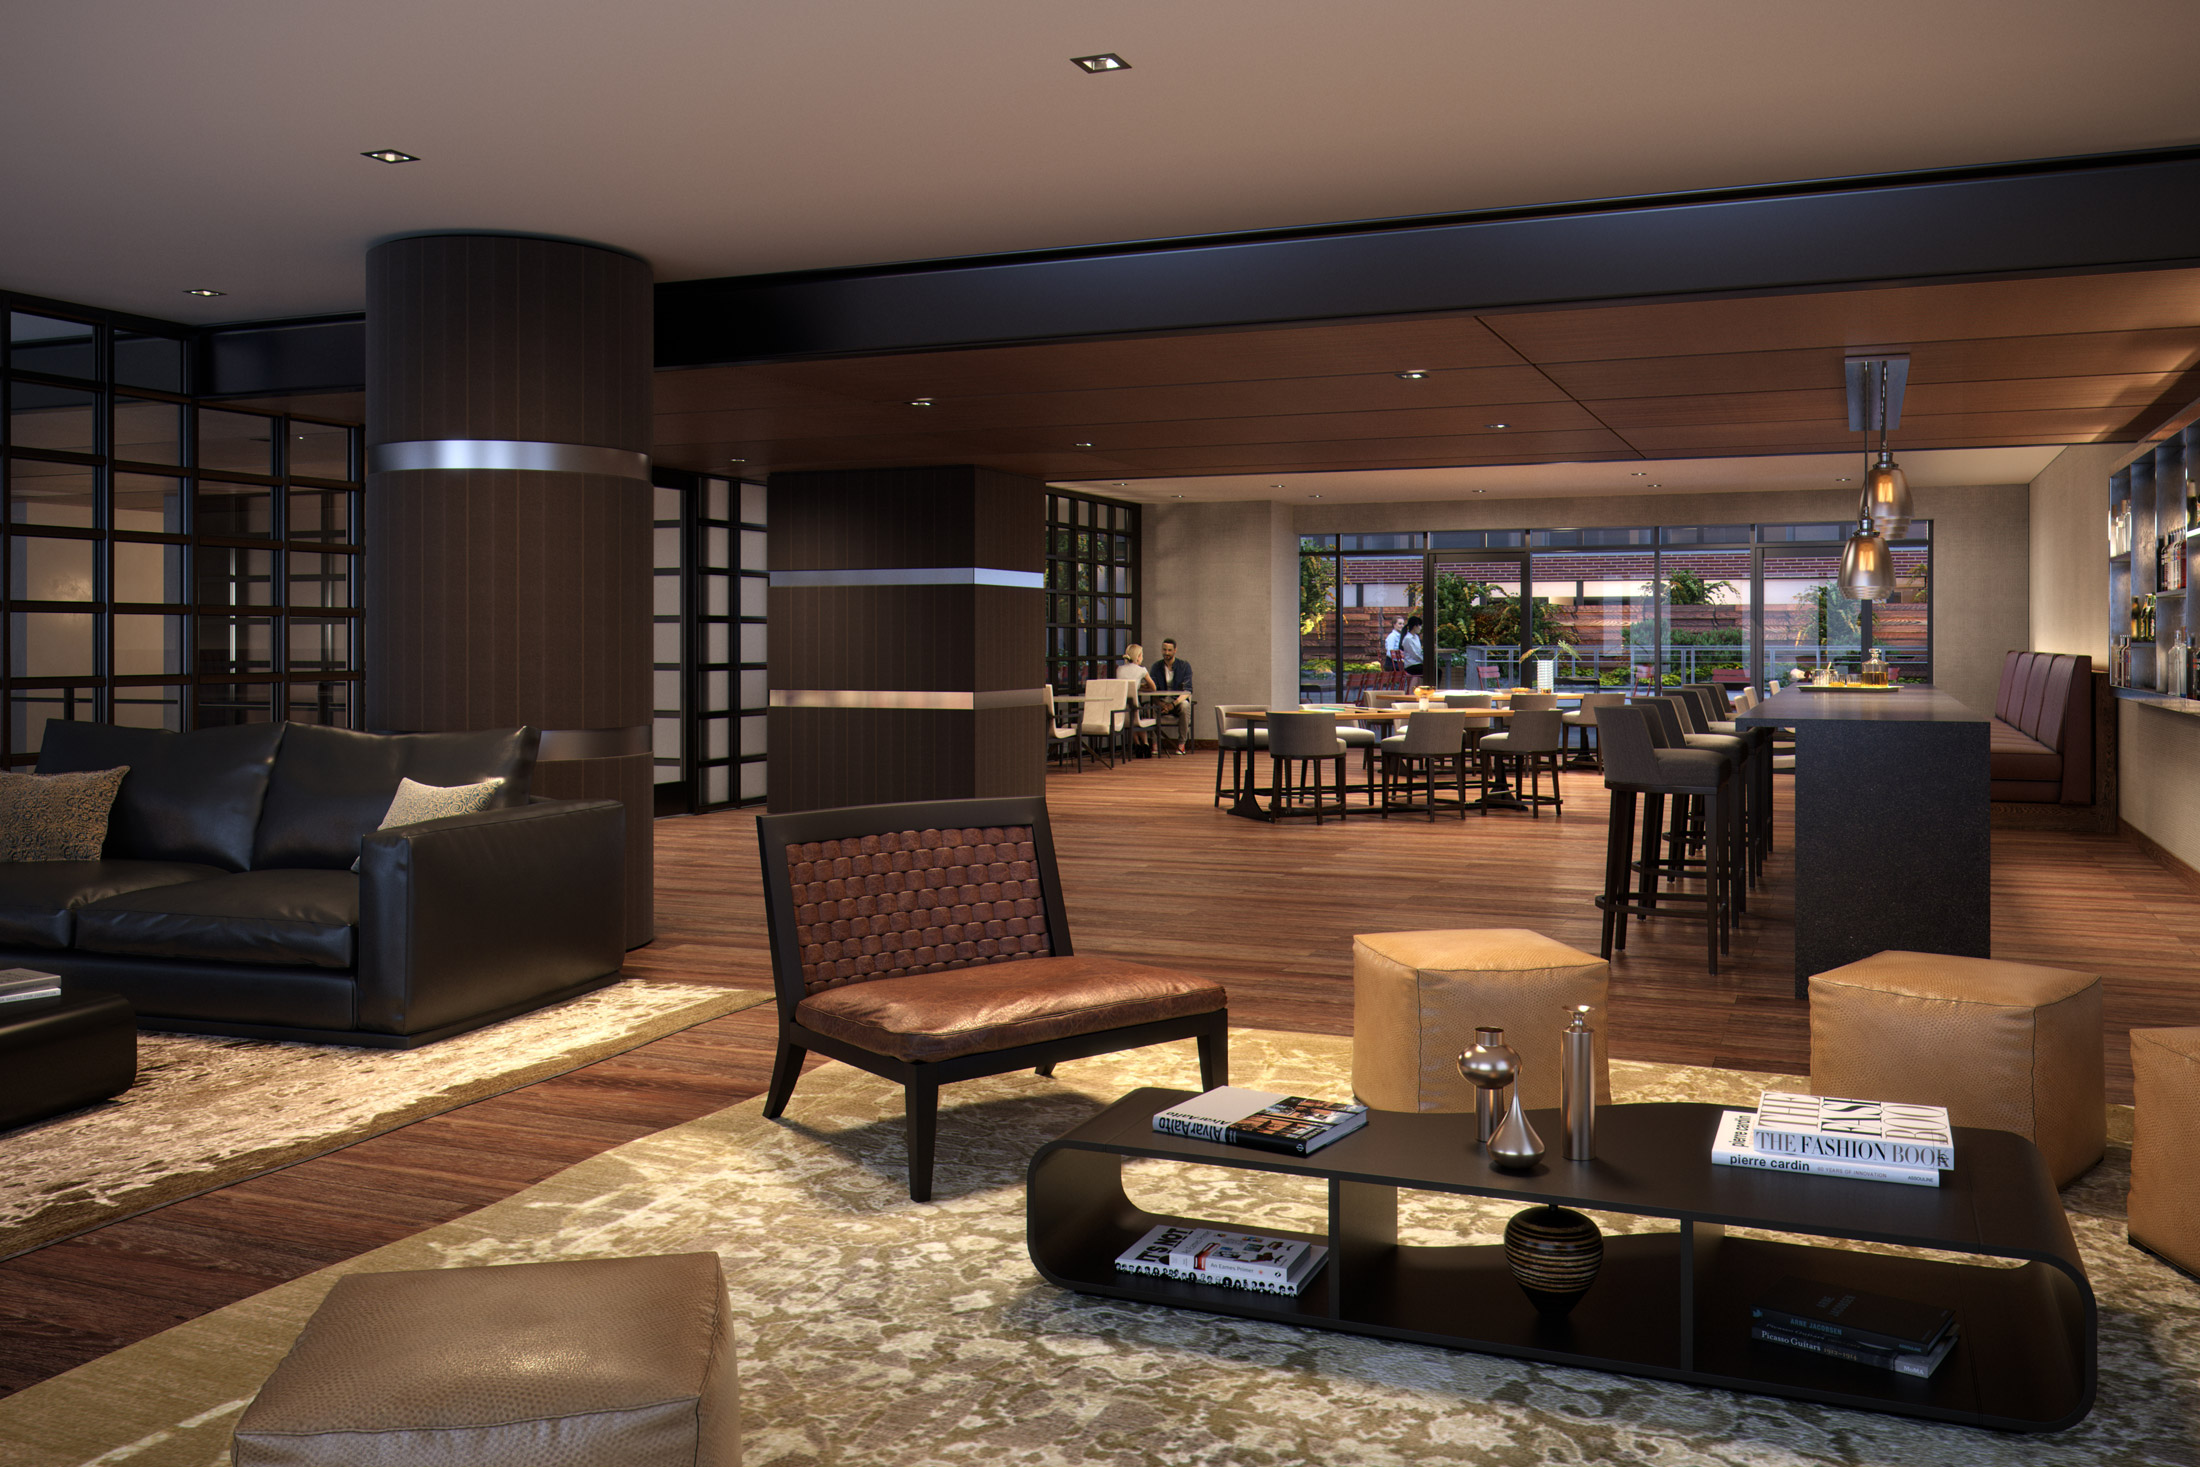 Architectural Rendering of the lounge party of the 525 West 52nd Street project located in Hell's Kitchen, New York City